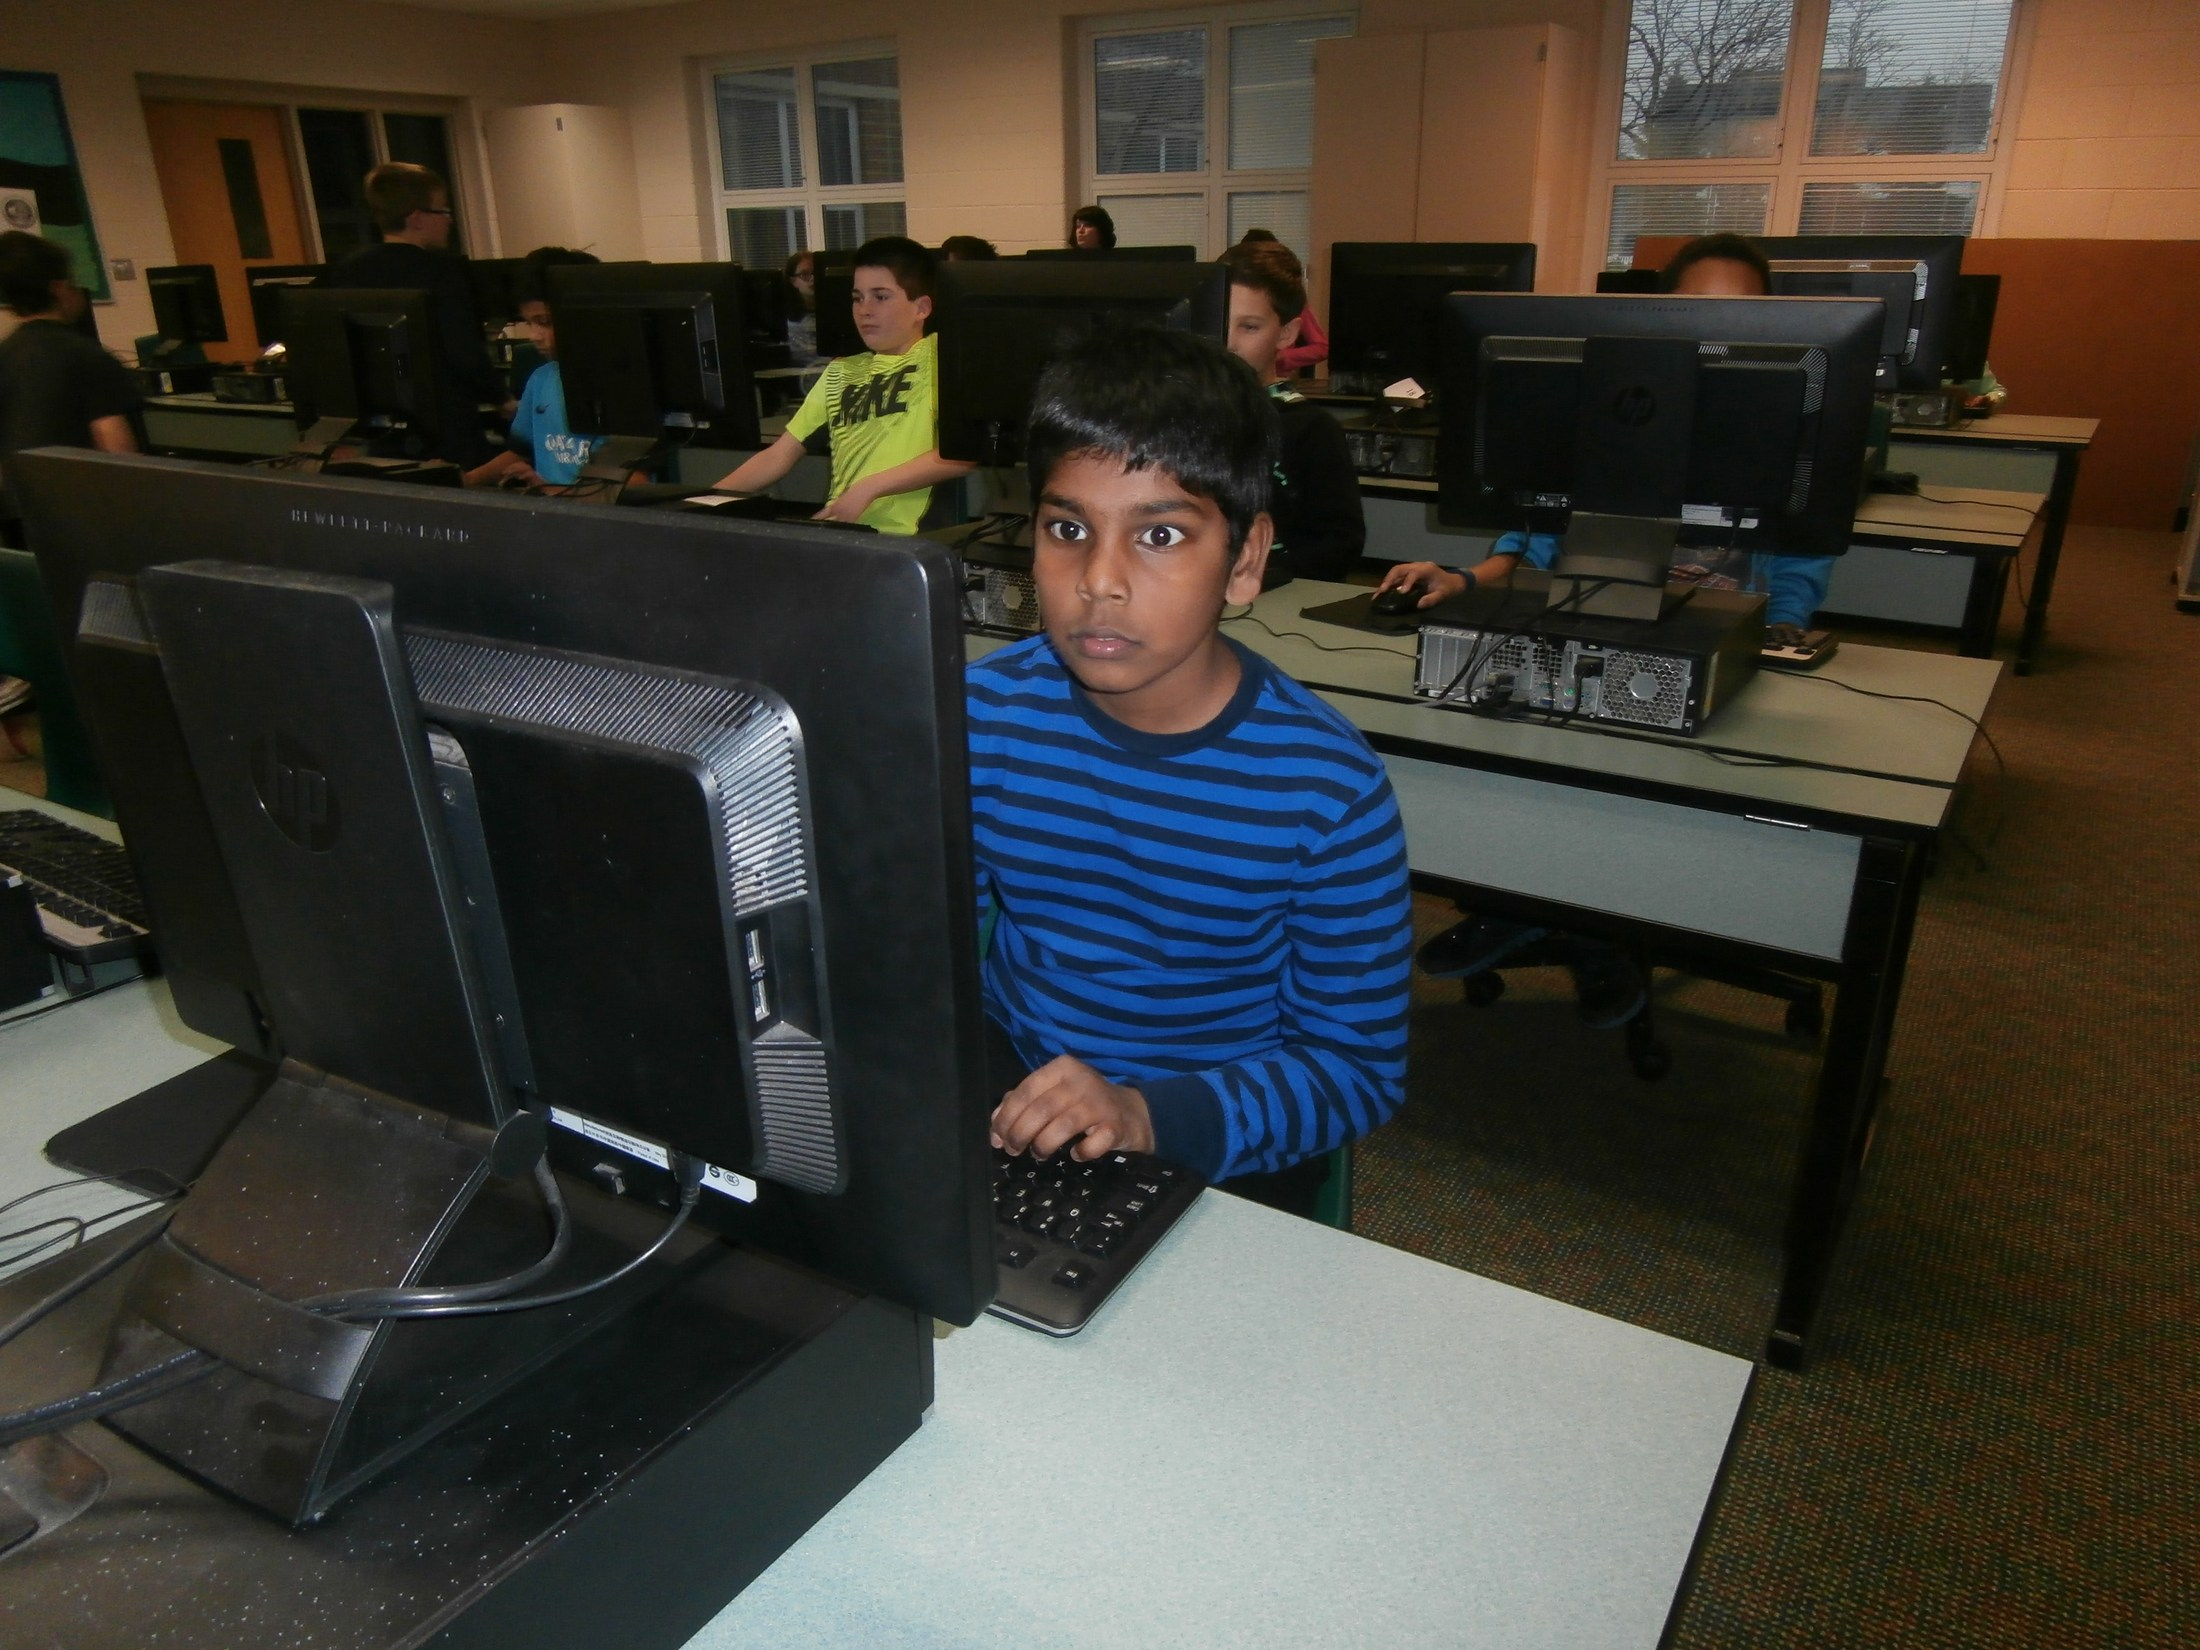 Computer lab time during Kids' Club.